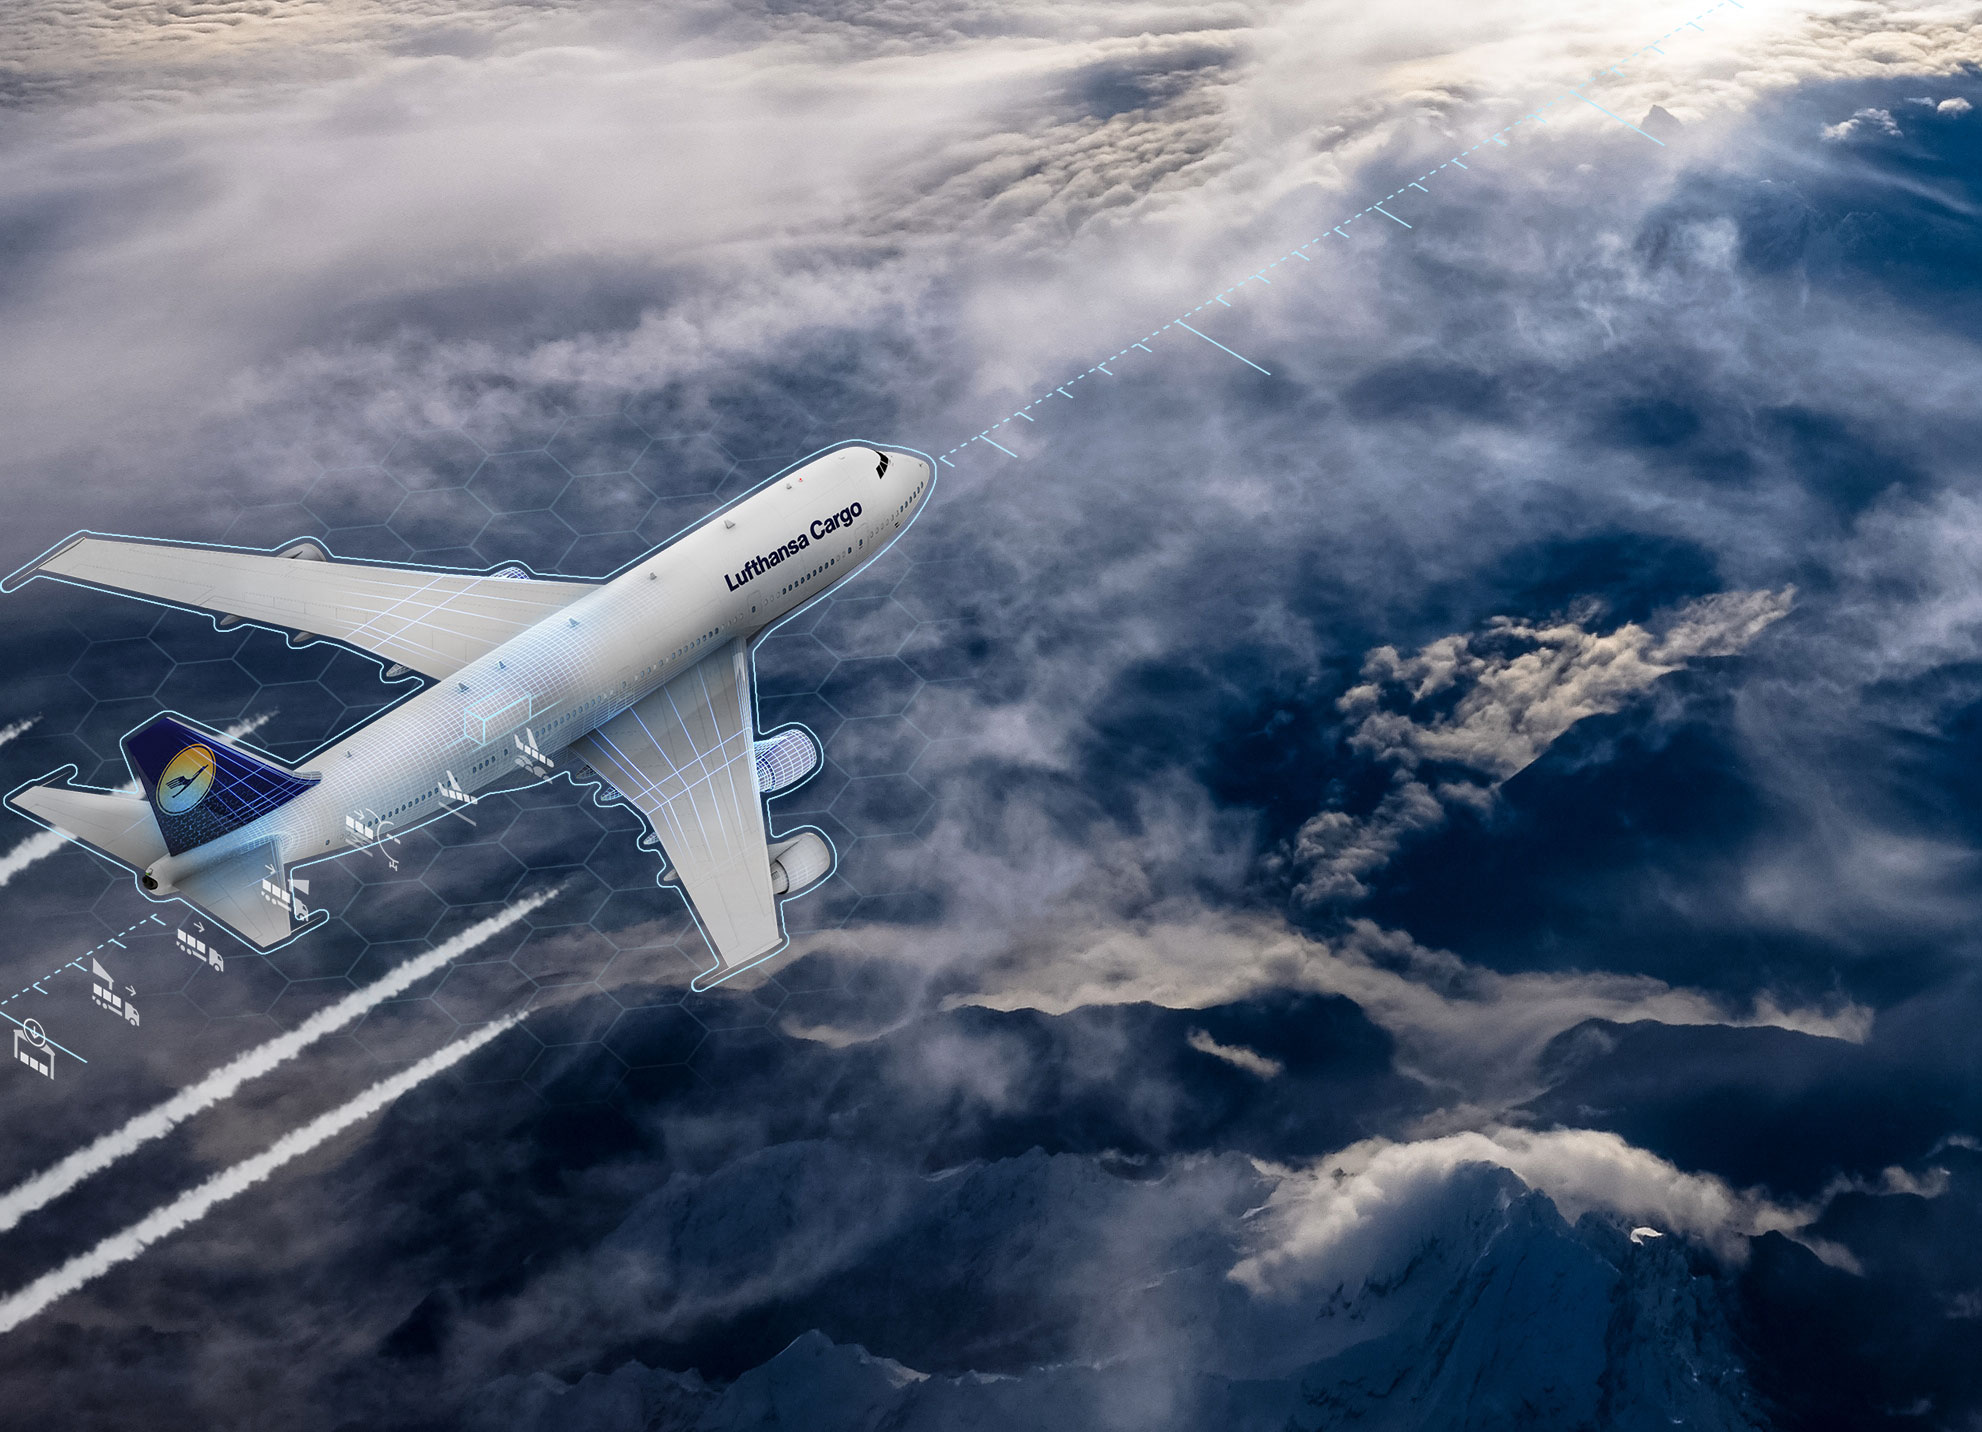 Photo illustration of aircraft over clouds being tracked